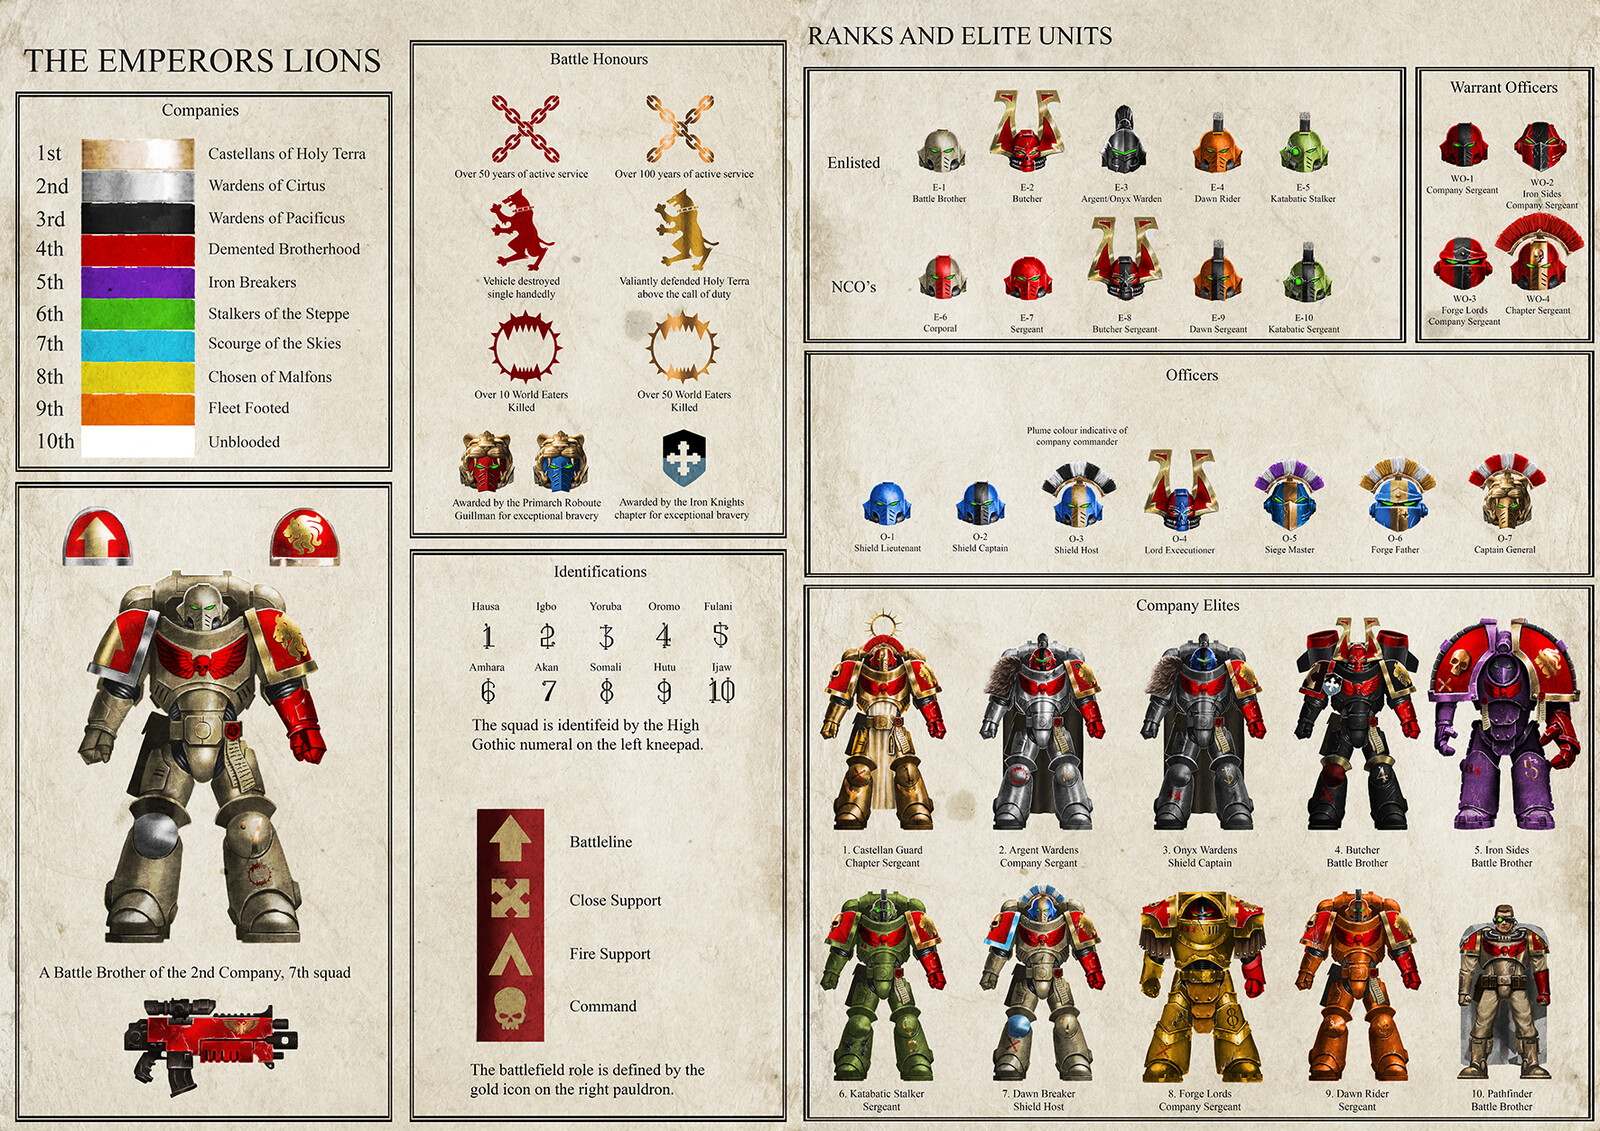 The Emperors Lion Elites and Ranks